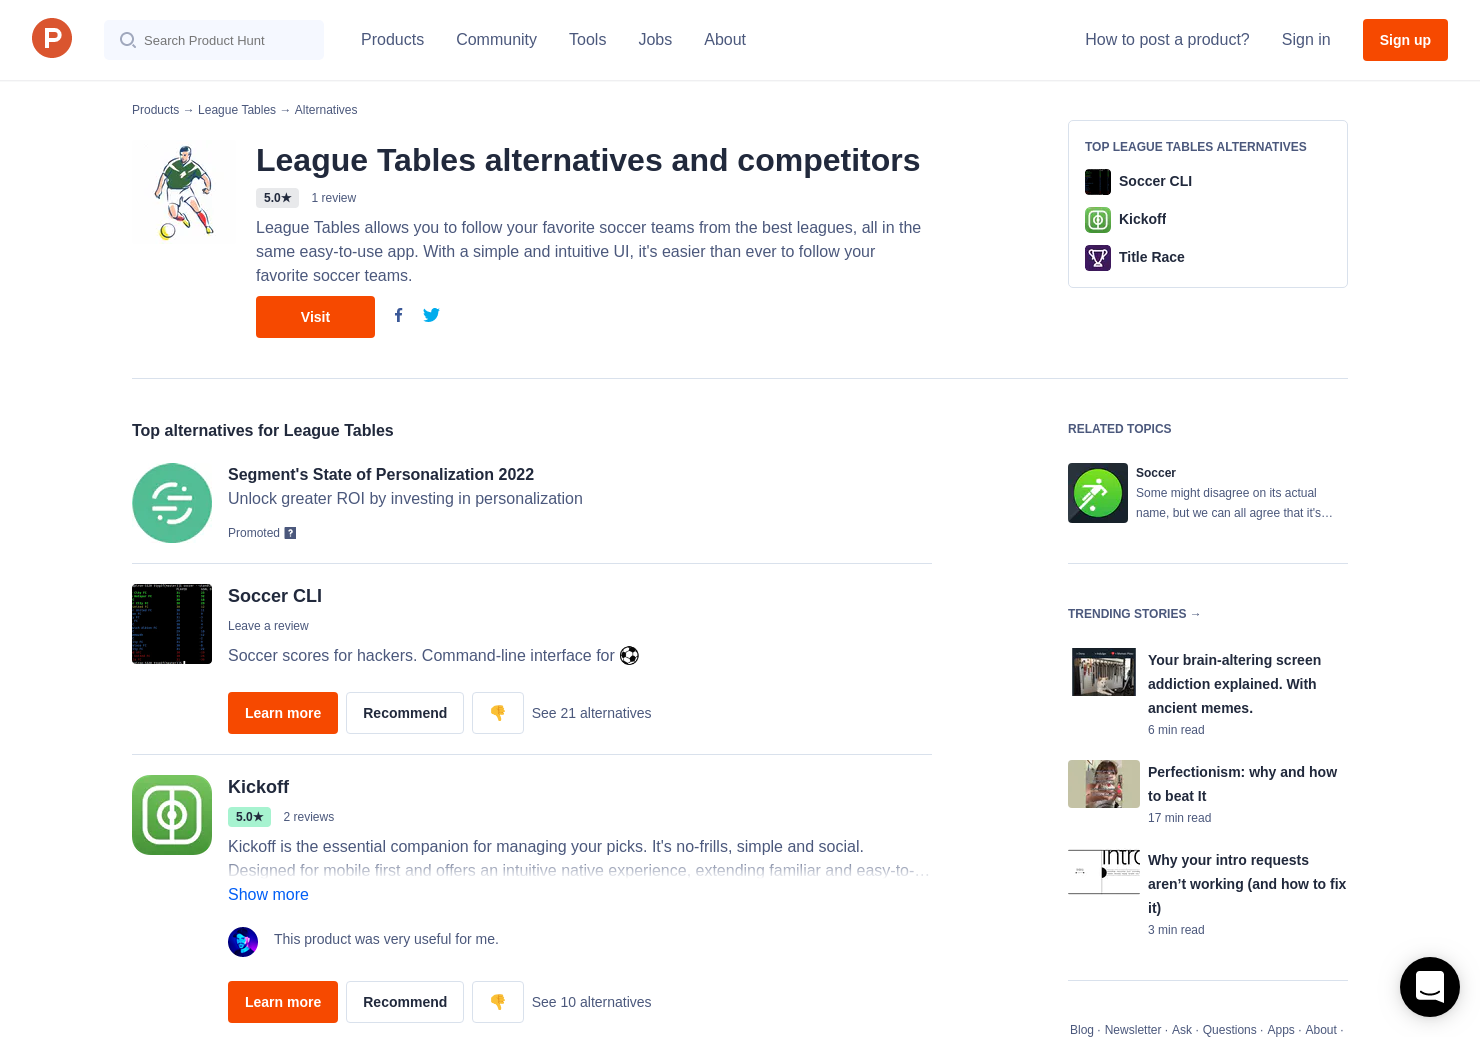 4 Alternatives to League Tables | Product Hunt